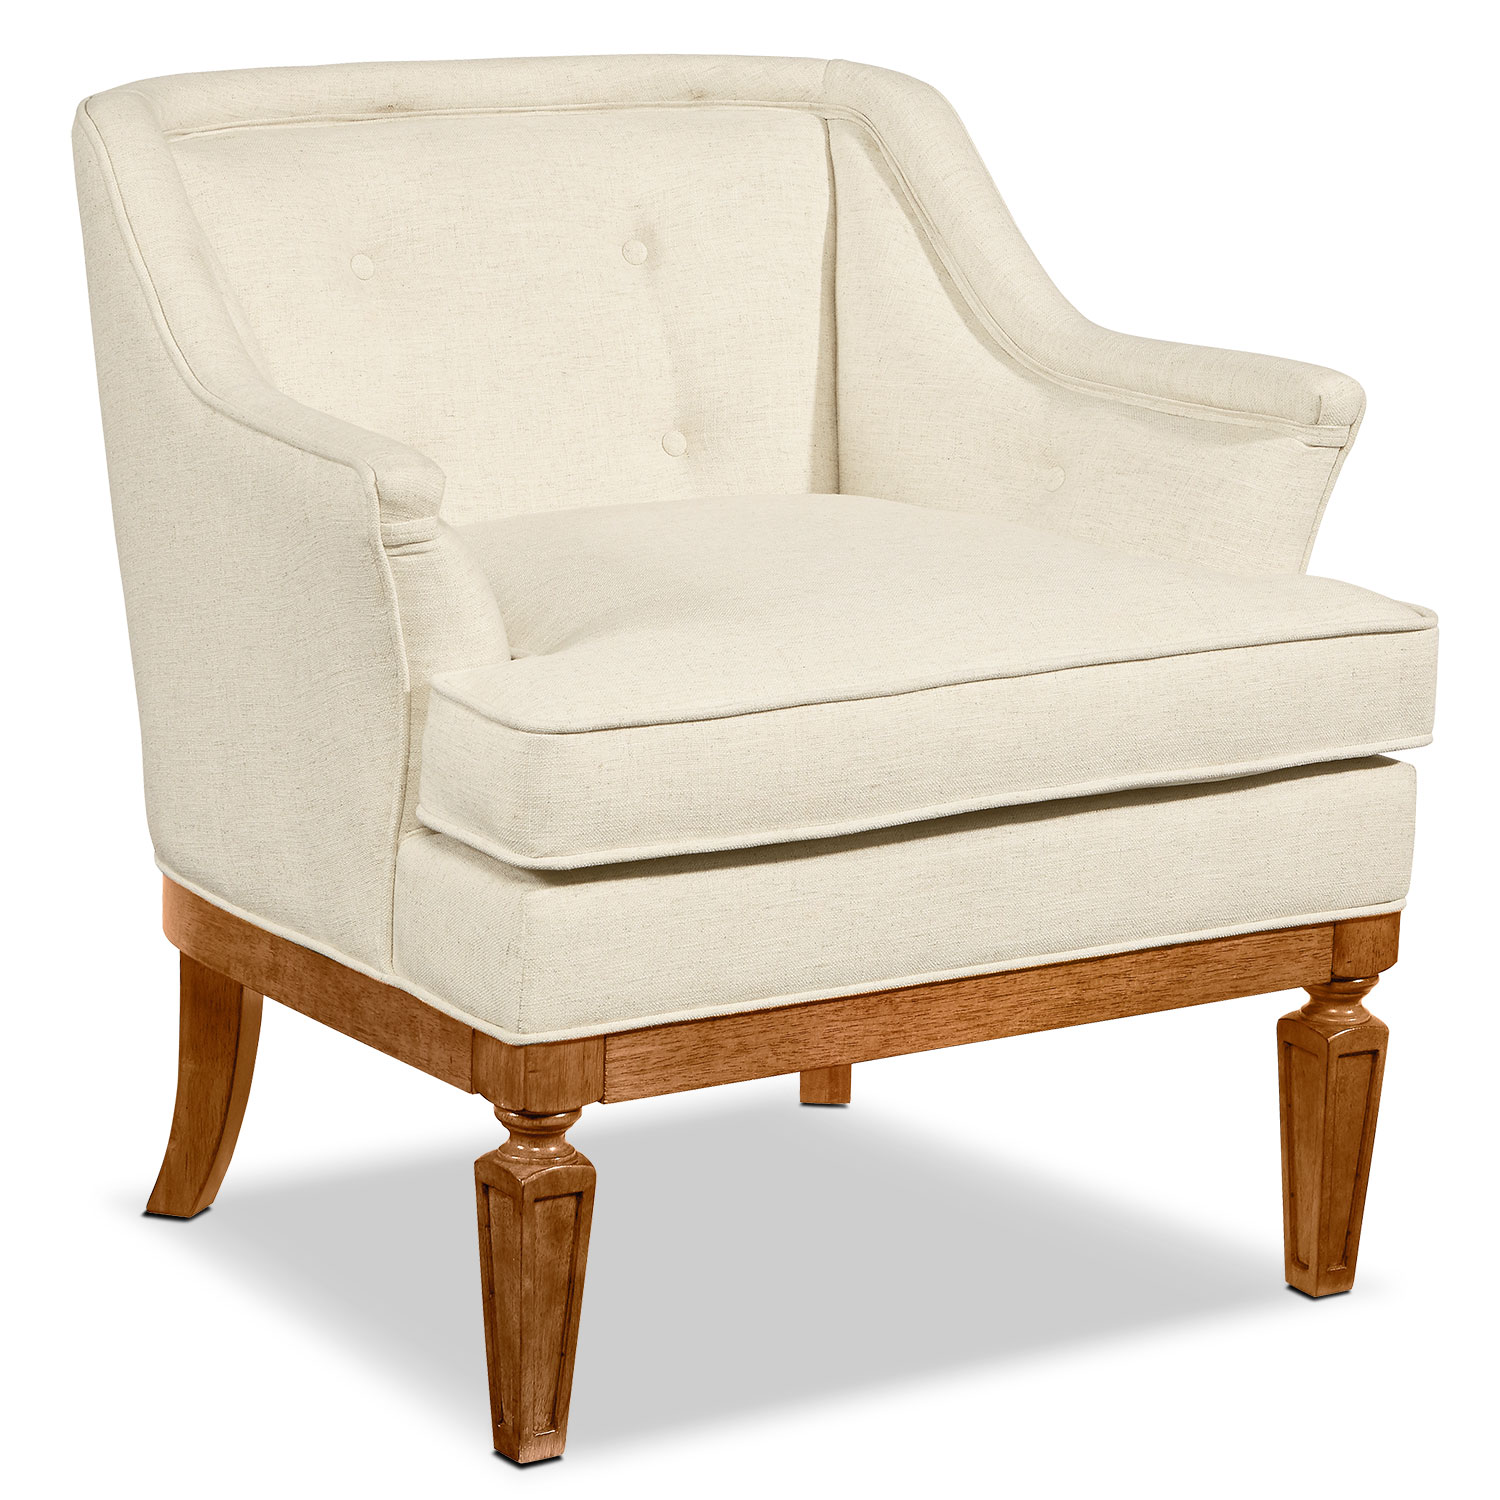 Ivory Living Room Furniture: Cotillion Accent Chair - Ivory